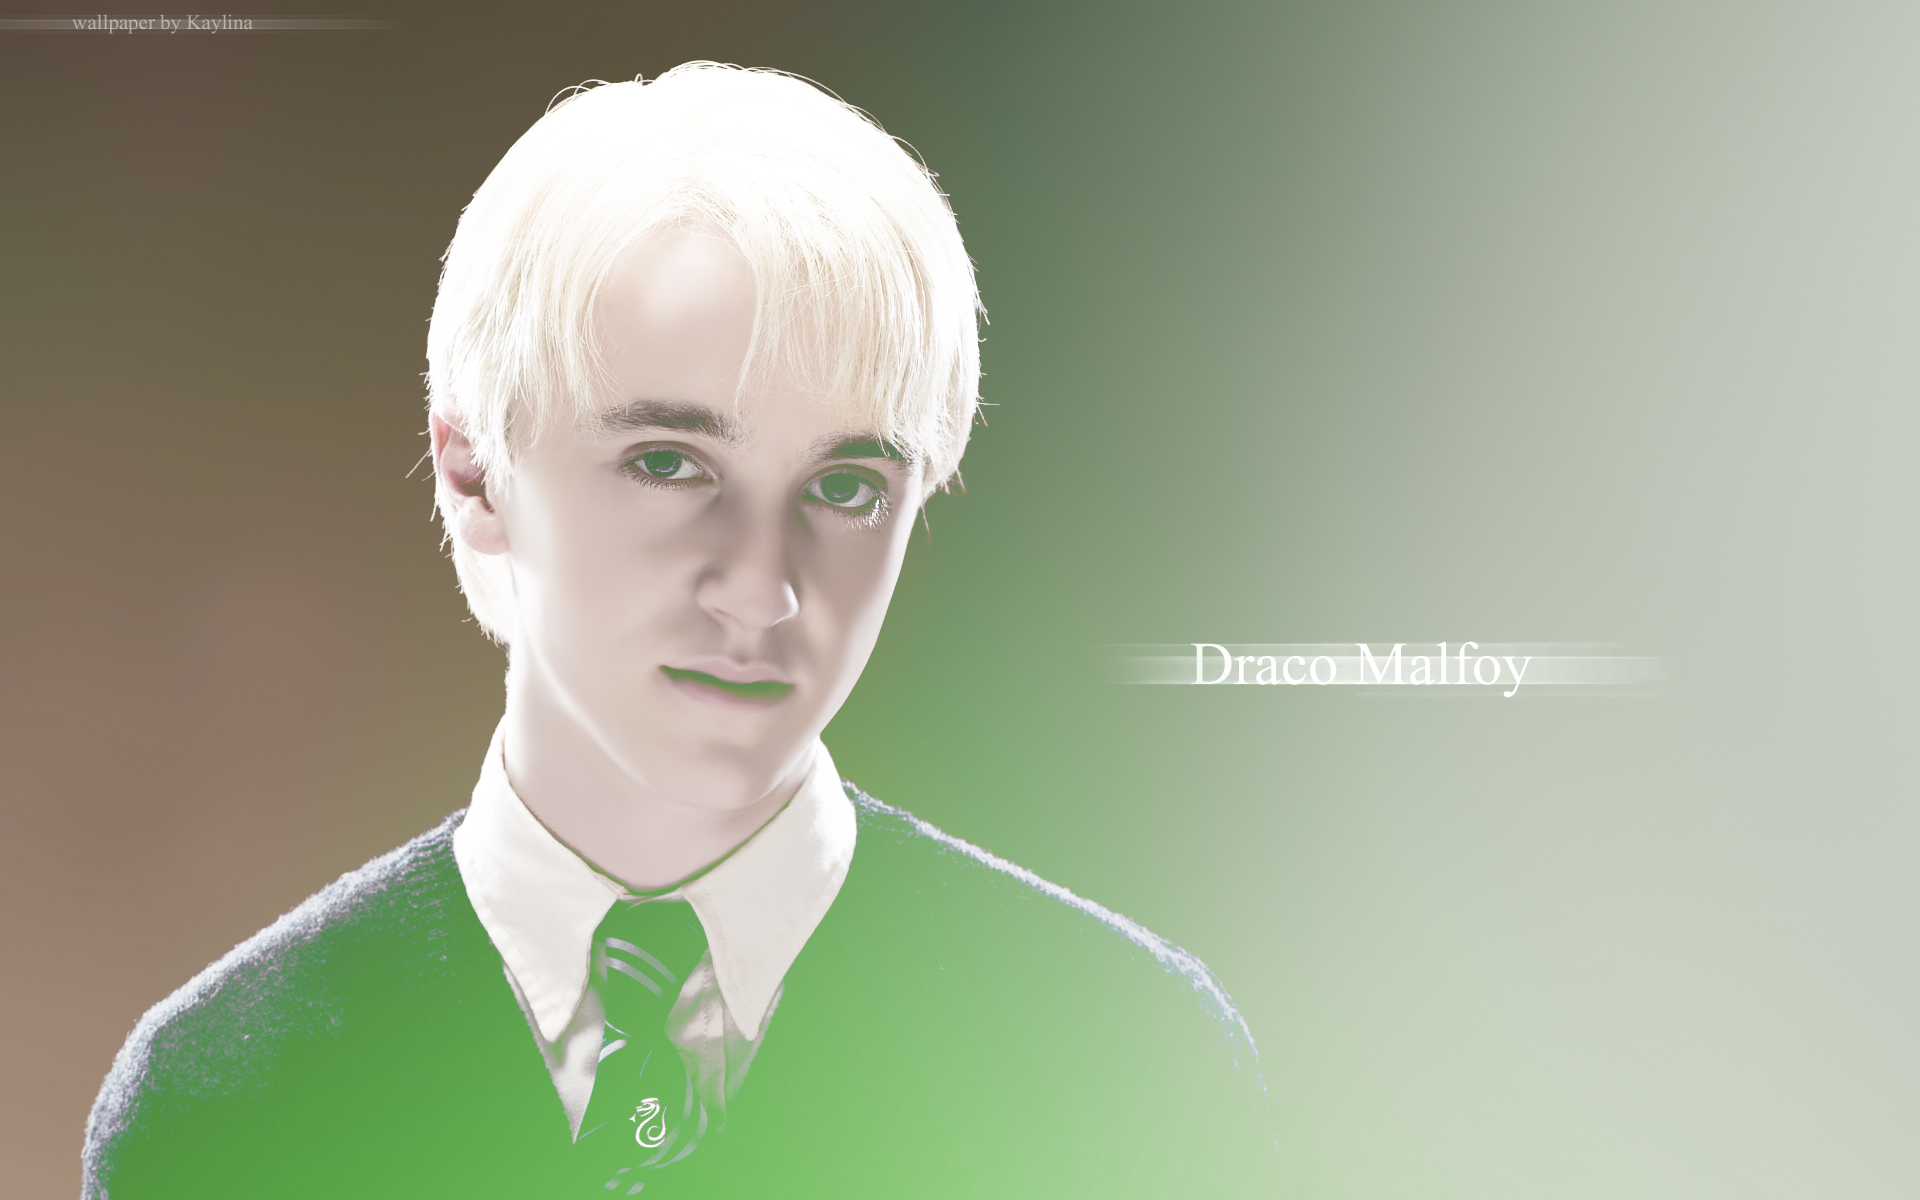 Draco Malfoy Iphone Wallpaper Draco Malfoy Wallpaper by